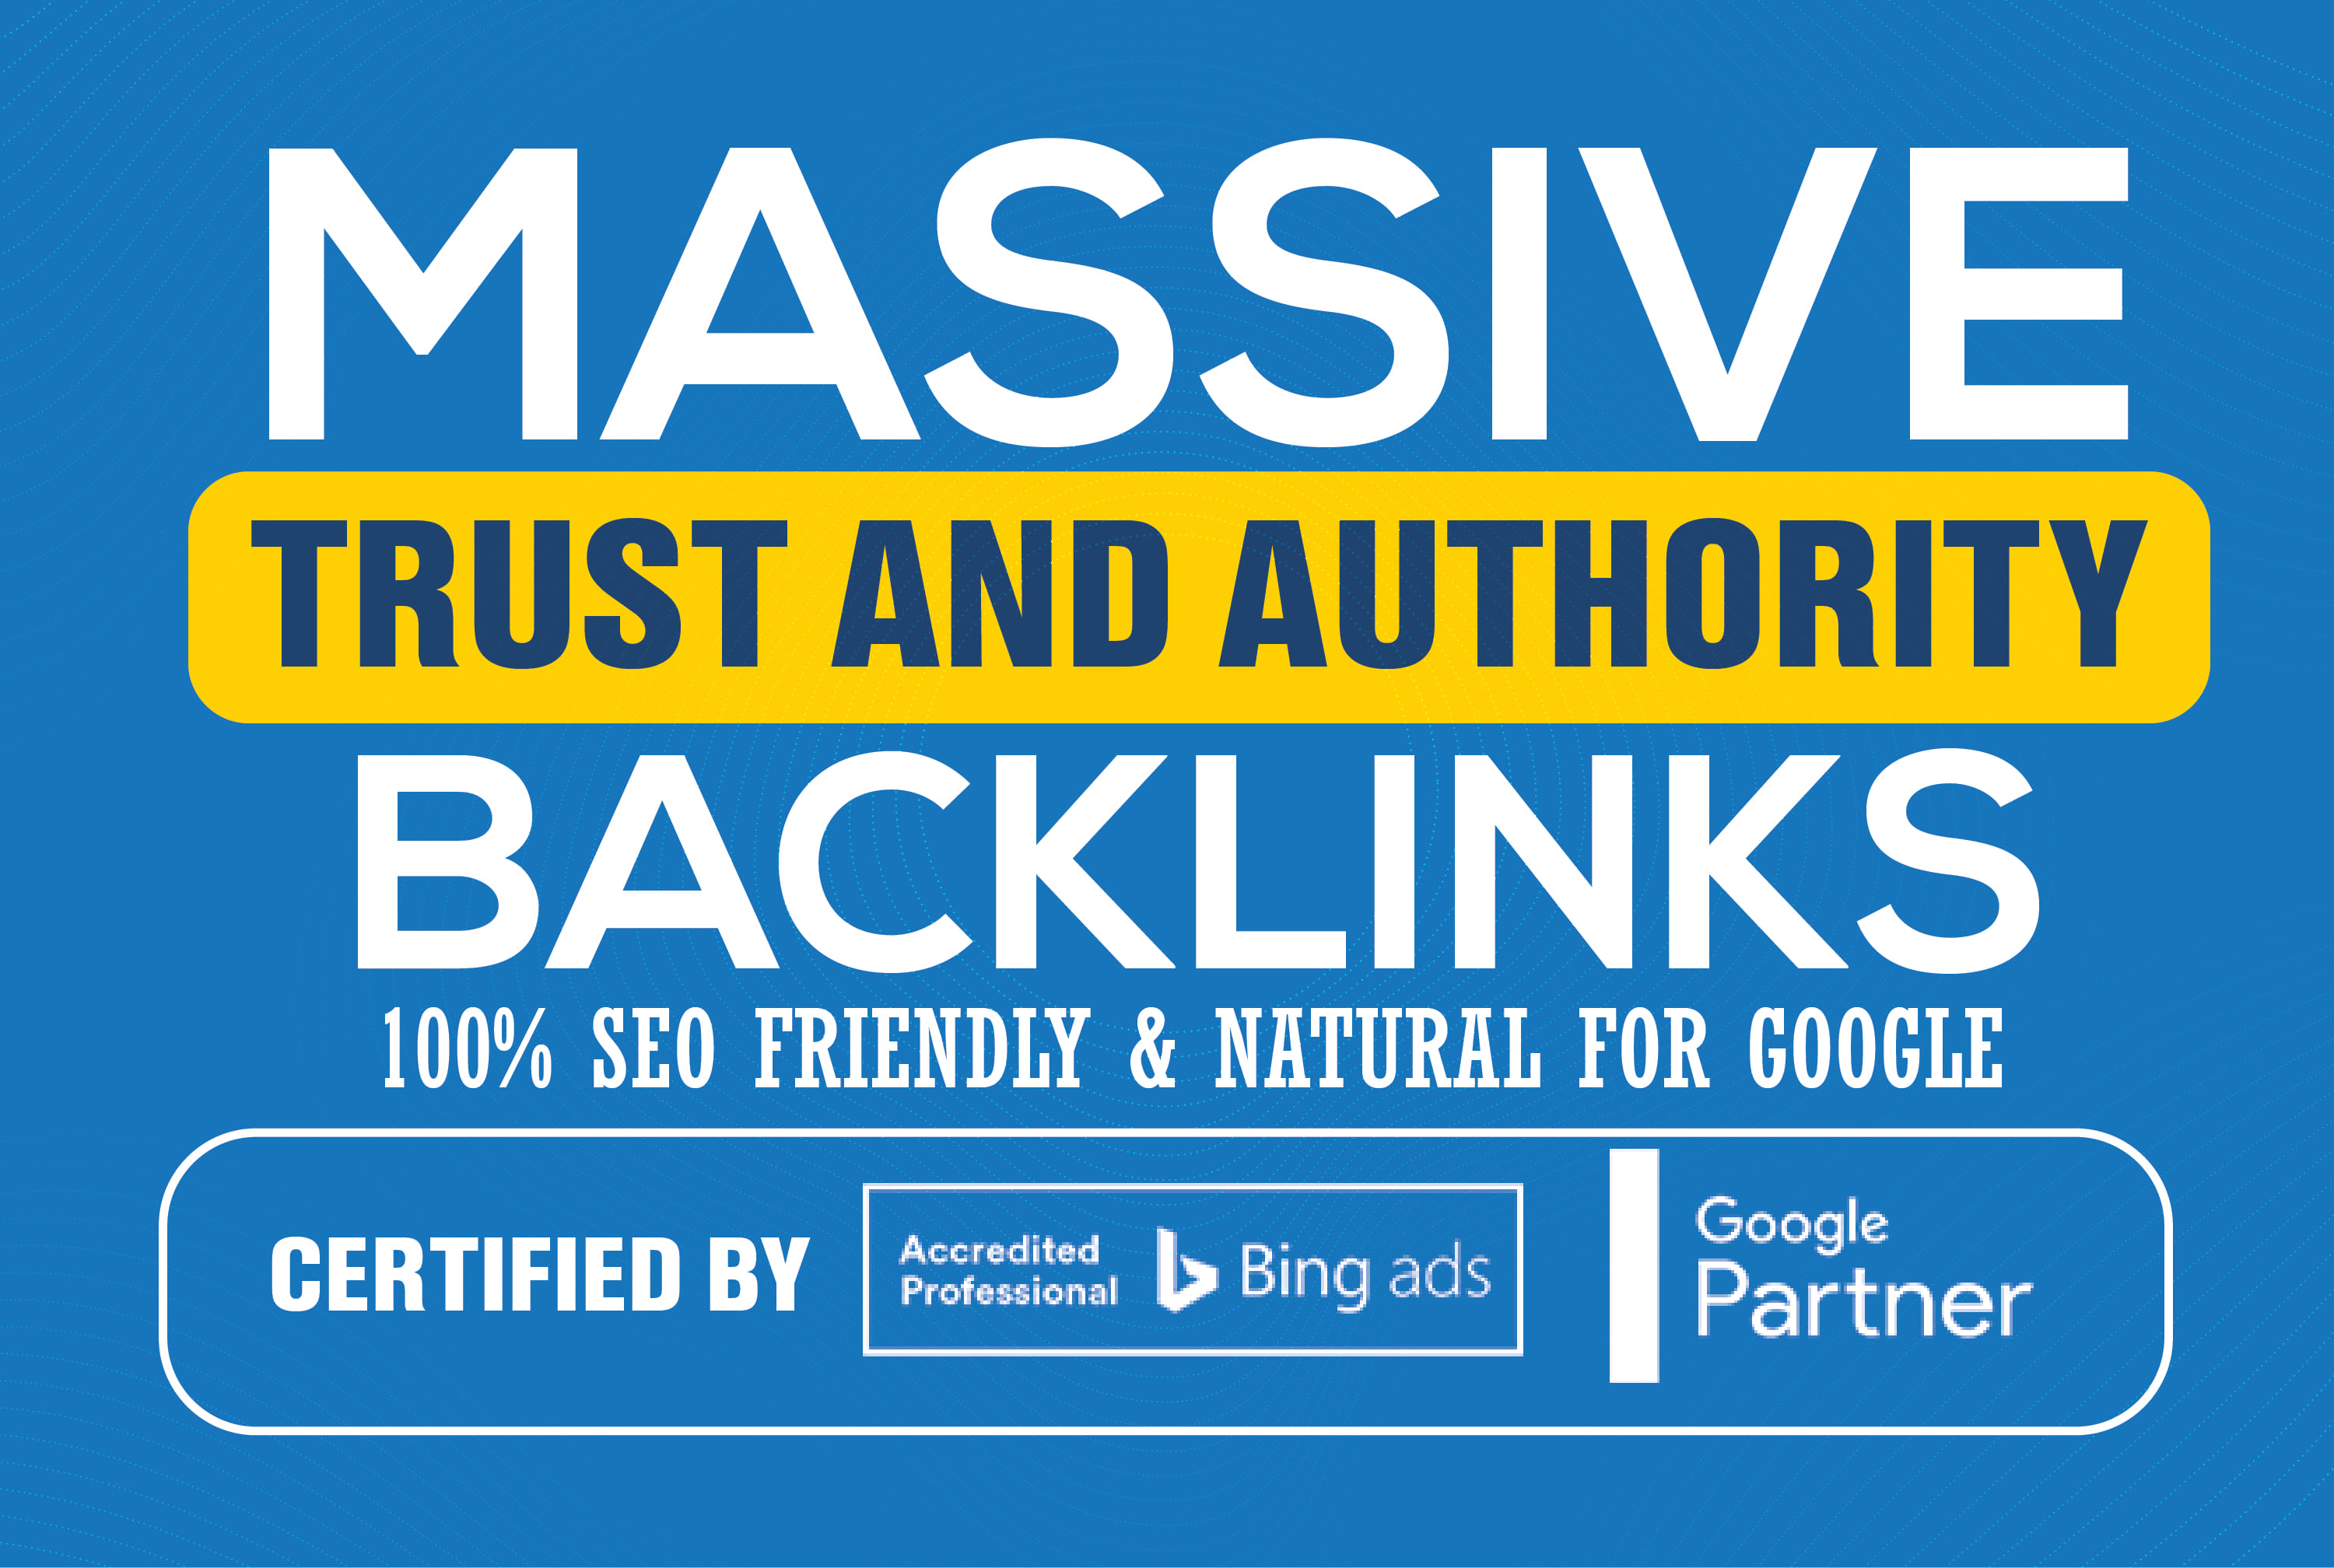 800 High Authority Backlinks to Catapult your Google SEO + Two Articles + Premium On-Site Analyzes